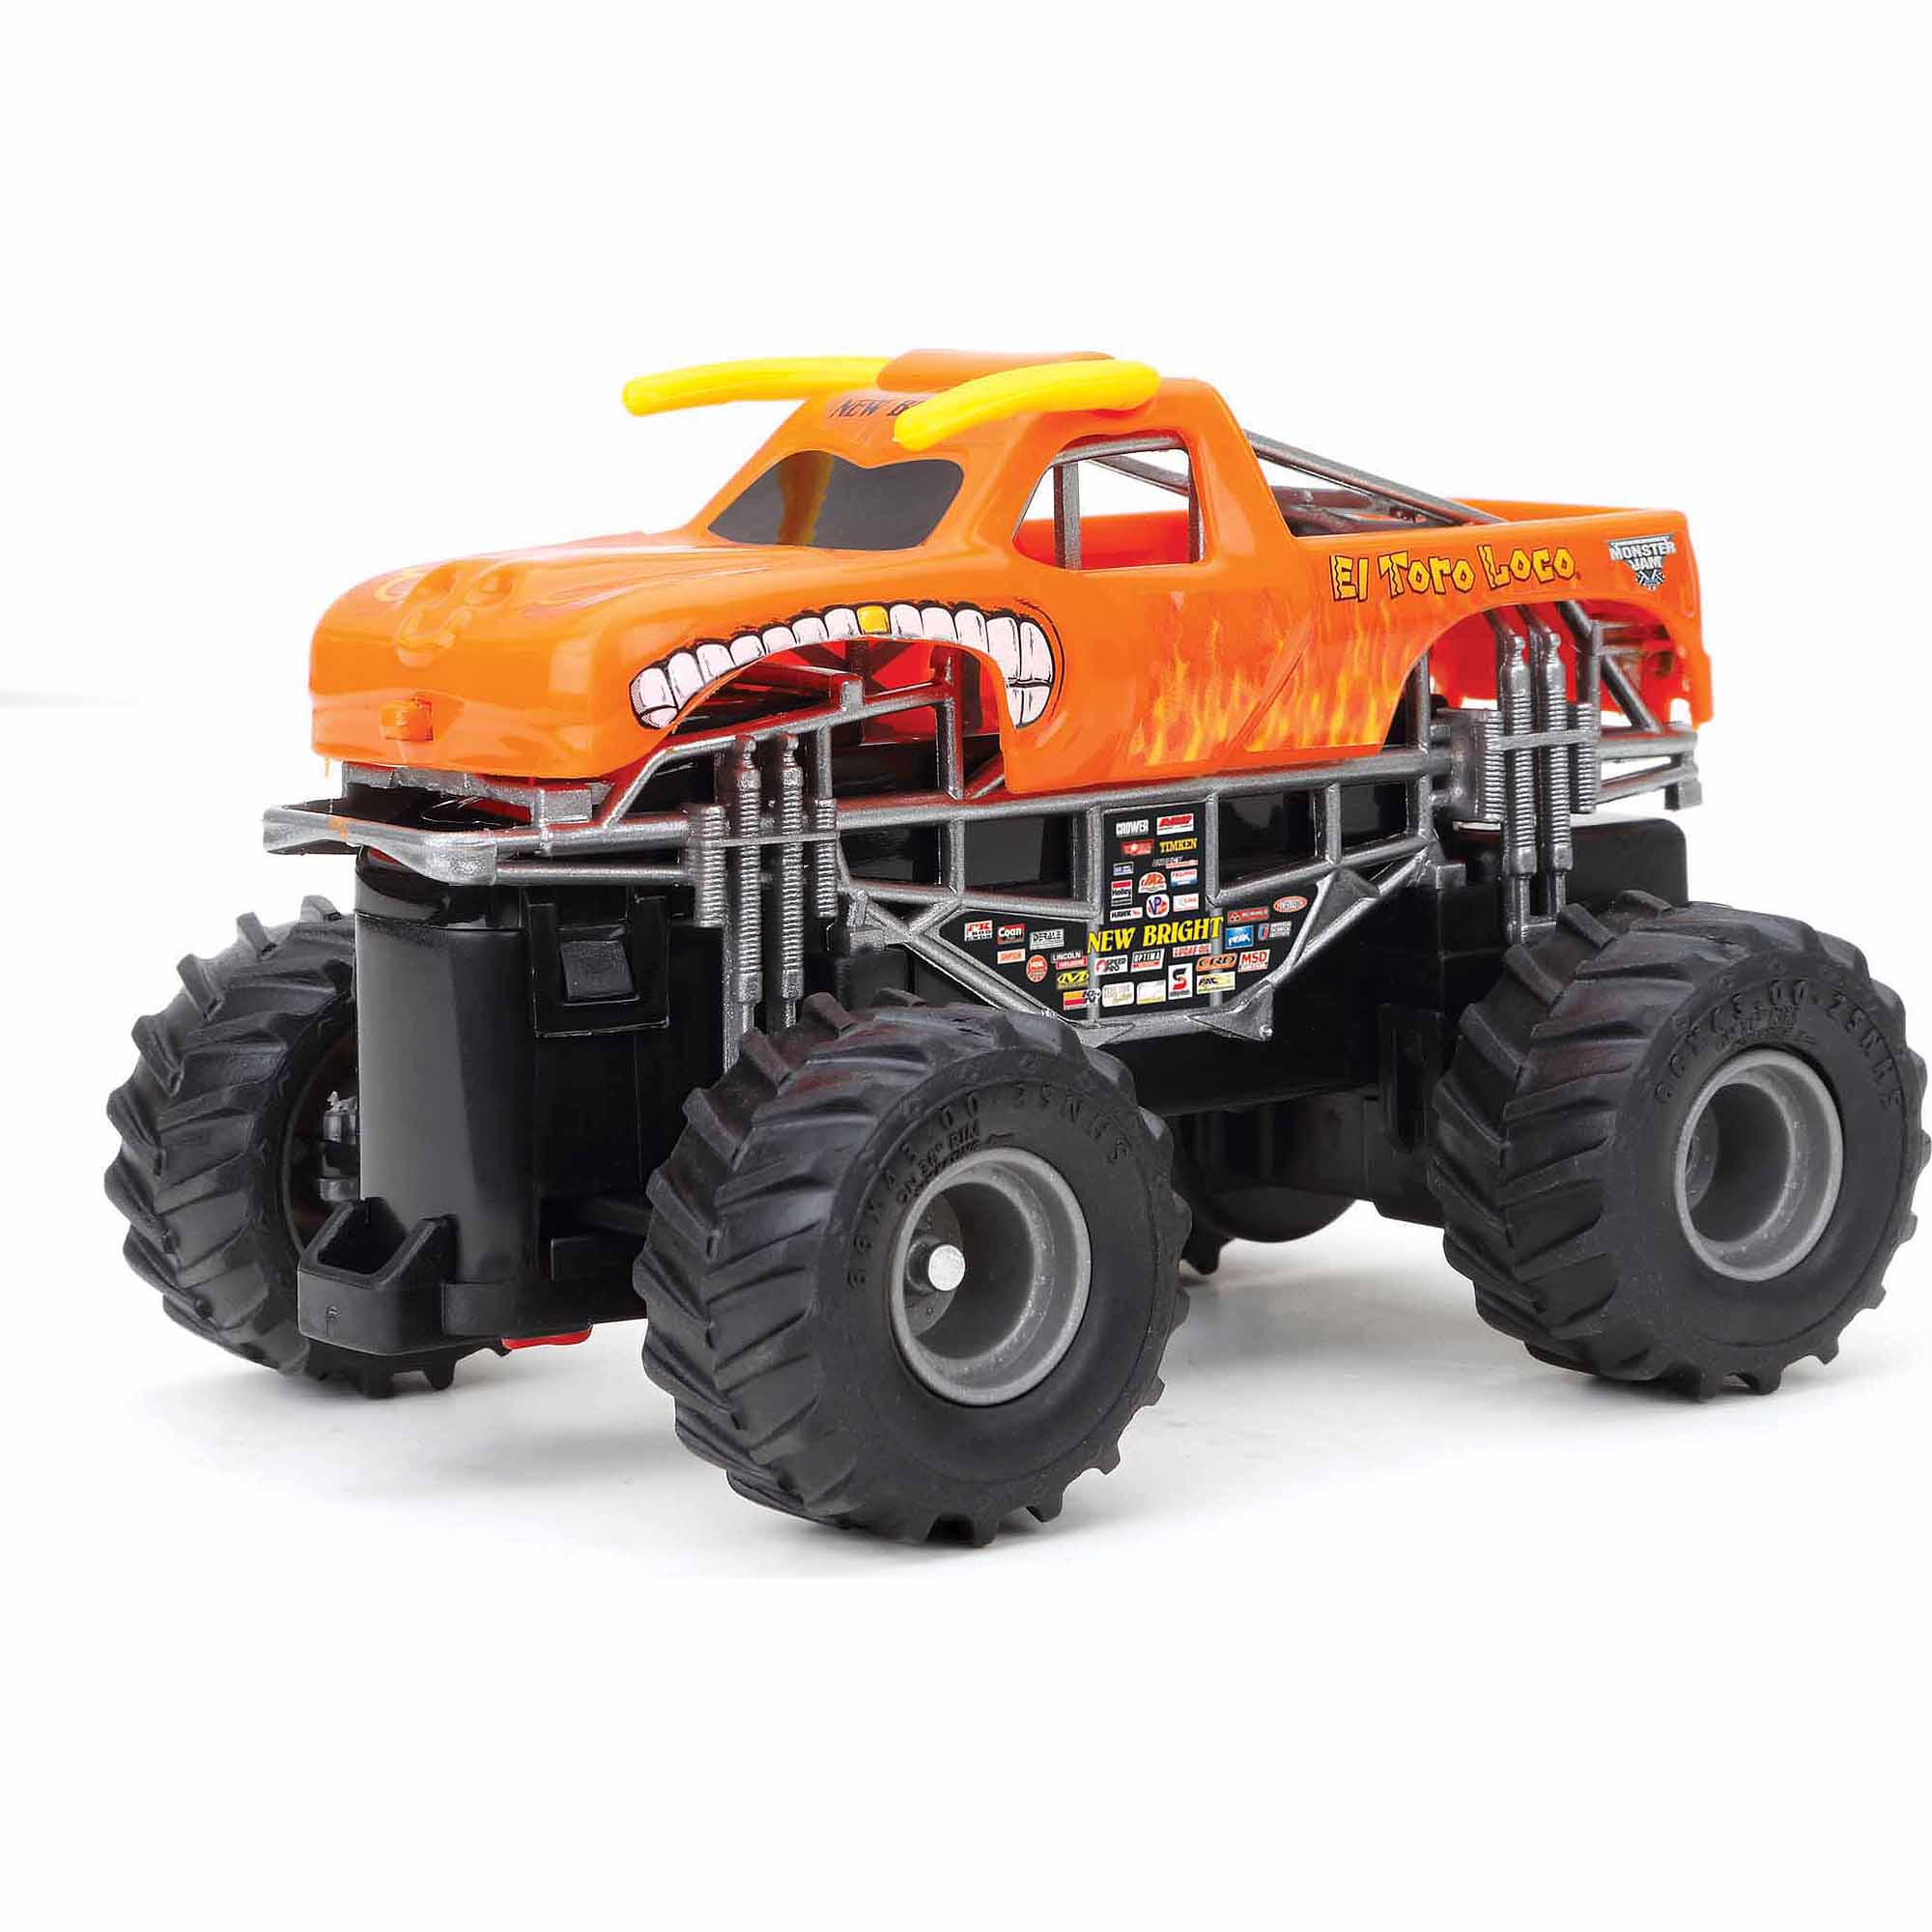 New Bright 1:43 Radio Control Full-Function Monster Jam El Toro Loco, Orange